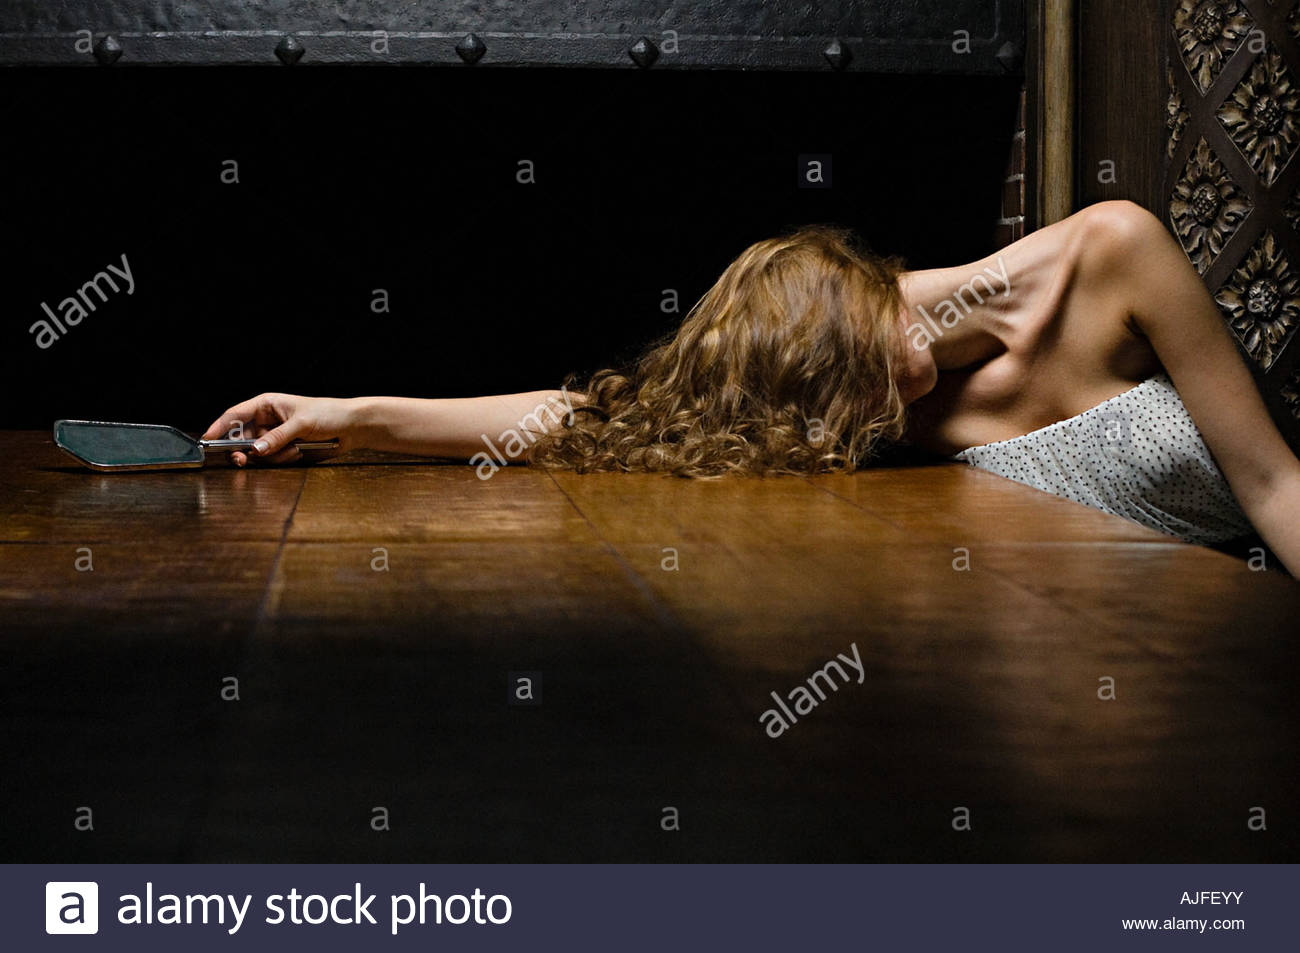 Woman leaning on a wooden table Stock Photo